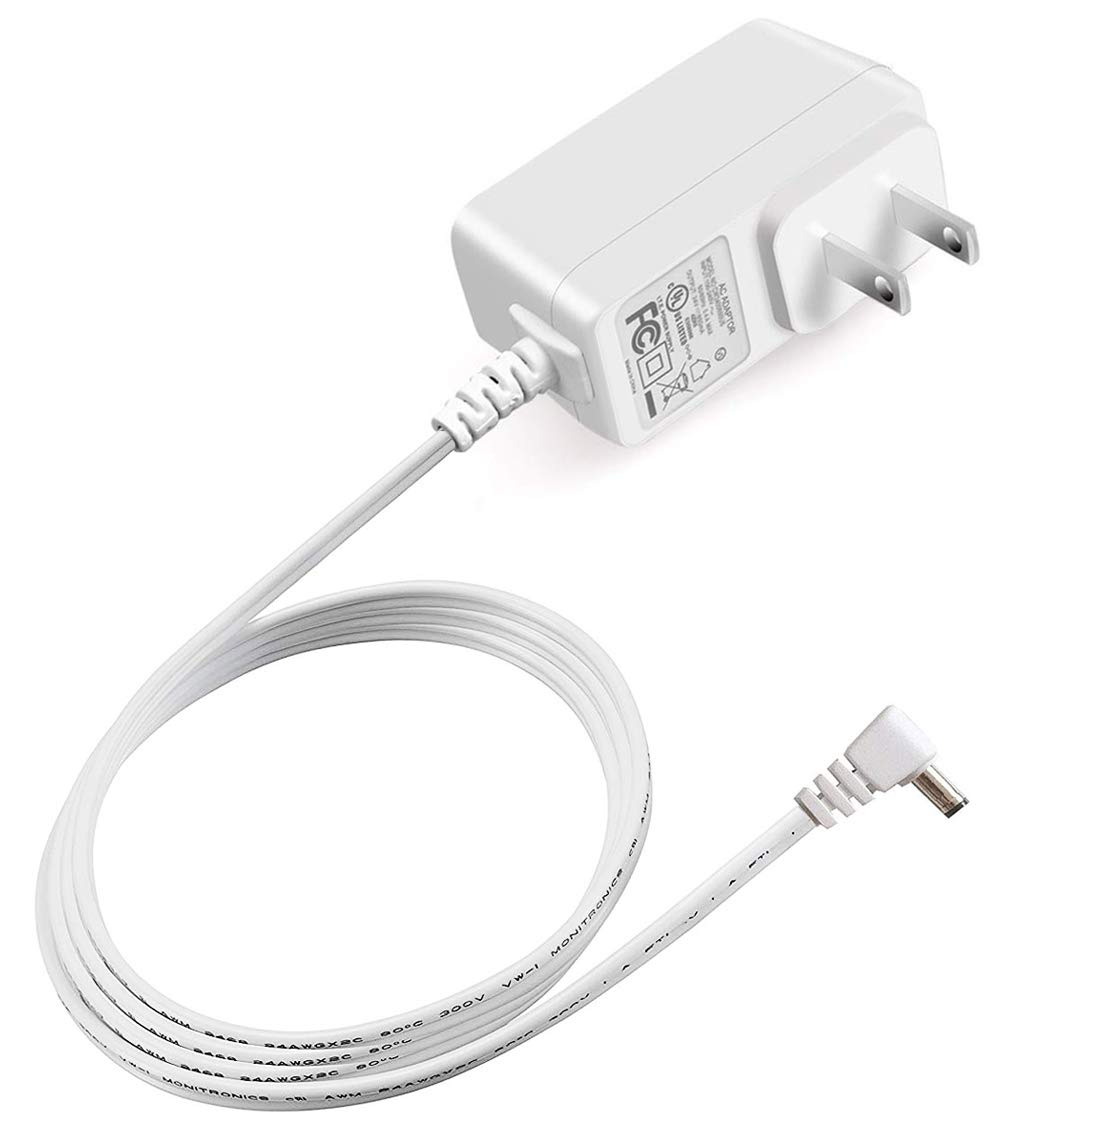 iCreatin UL Listed 7.5V 500mA AC Adapter Charger for Summer Infant Baby Monitor Models Including 29580 29650 28450 28650 29270 29590 28630 & Others Replacement Power Supply Cord 6.6Ft, White